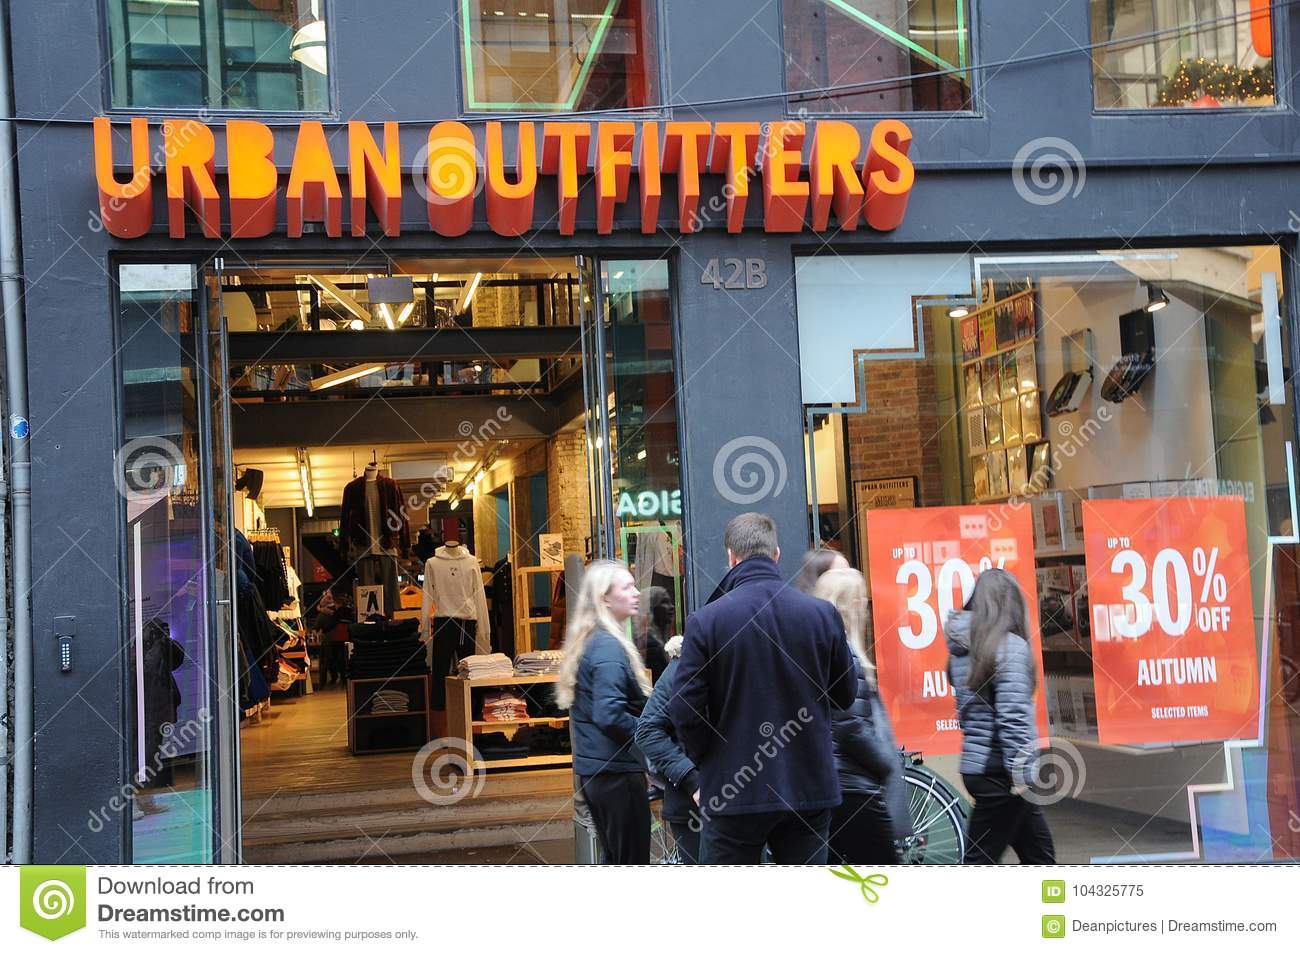 30  discount sale at urban oufitter store